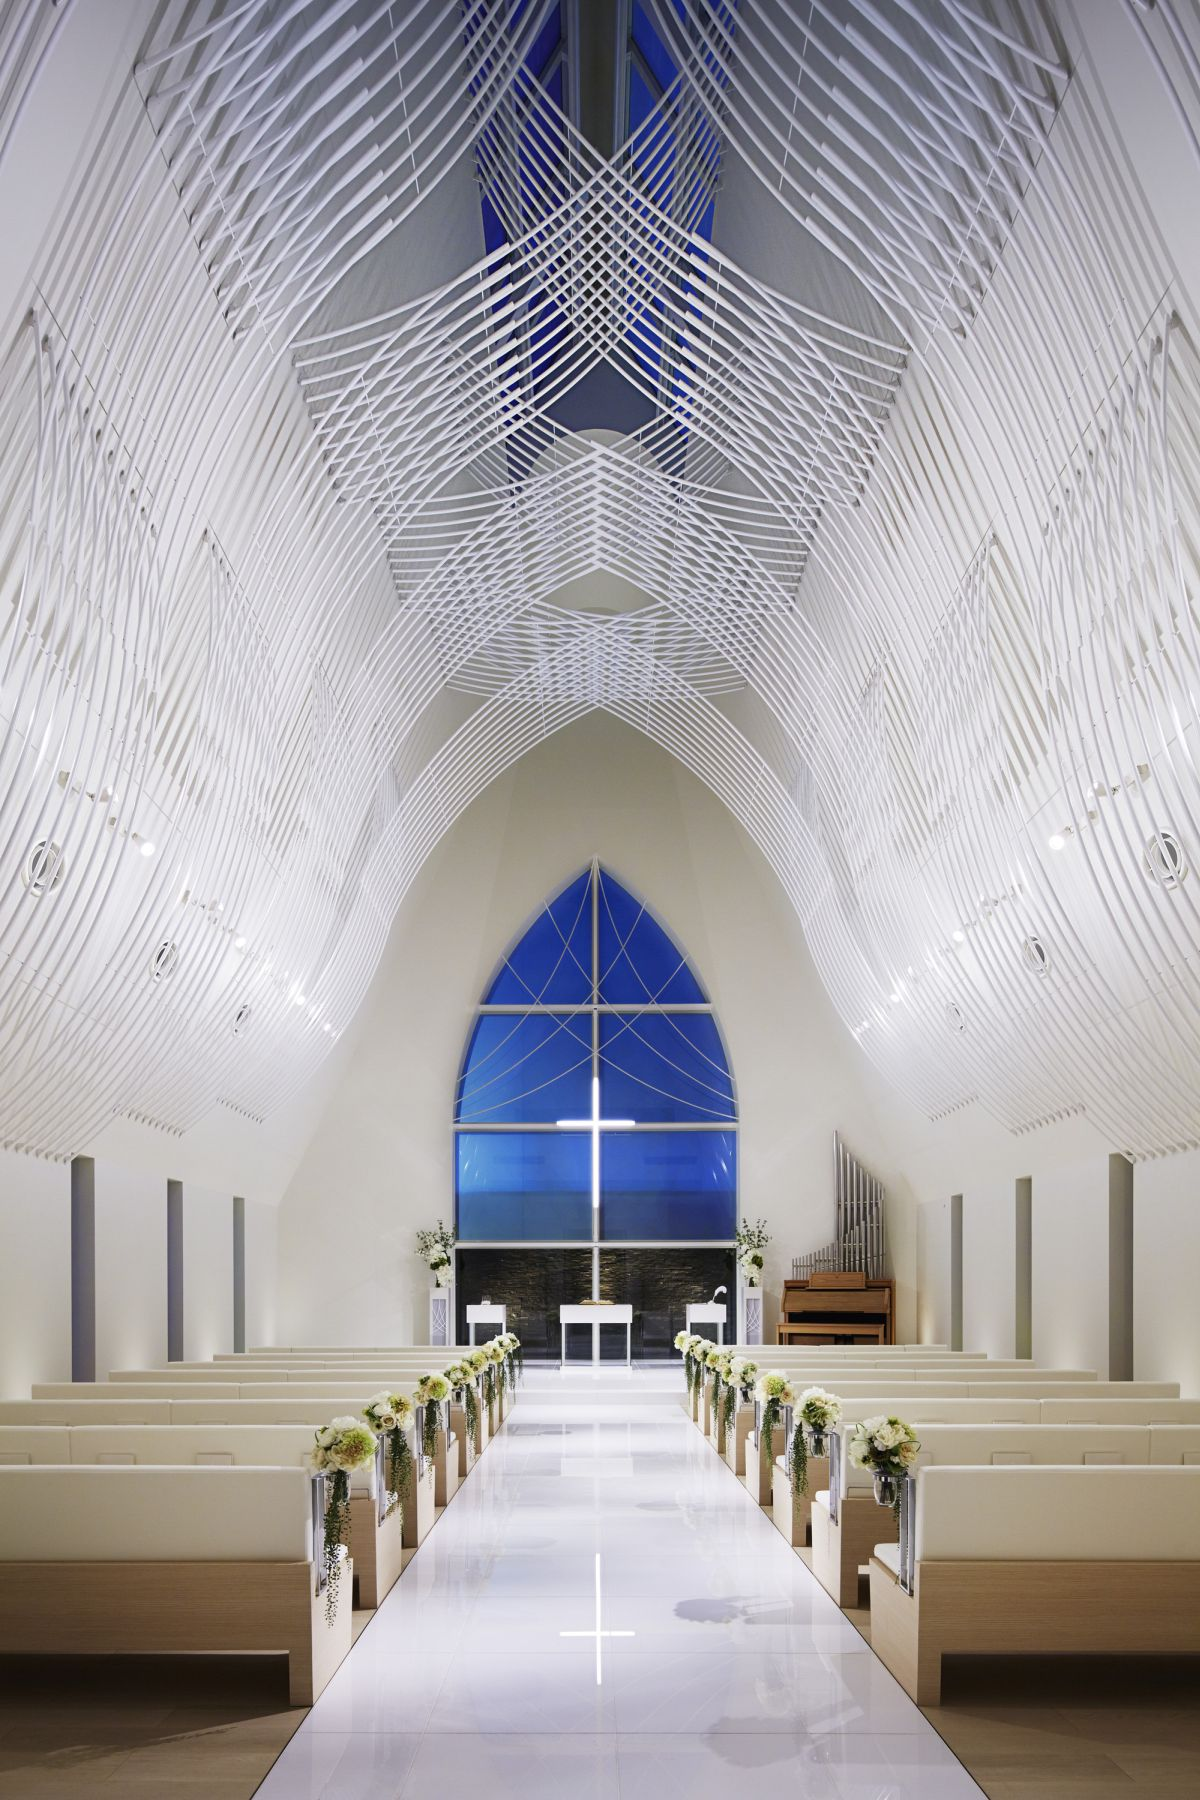 Chapels That Defy The Standards Through Minimalist And